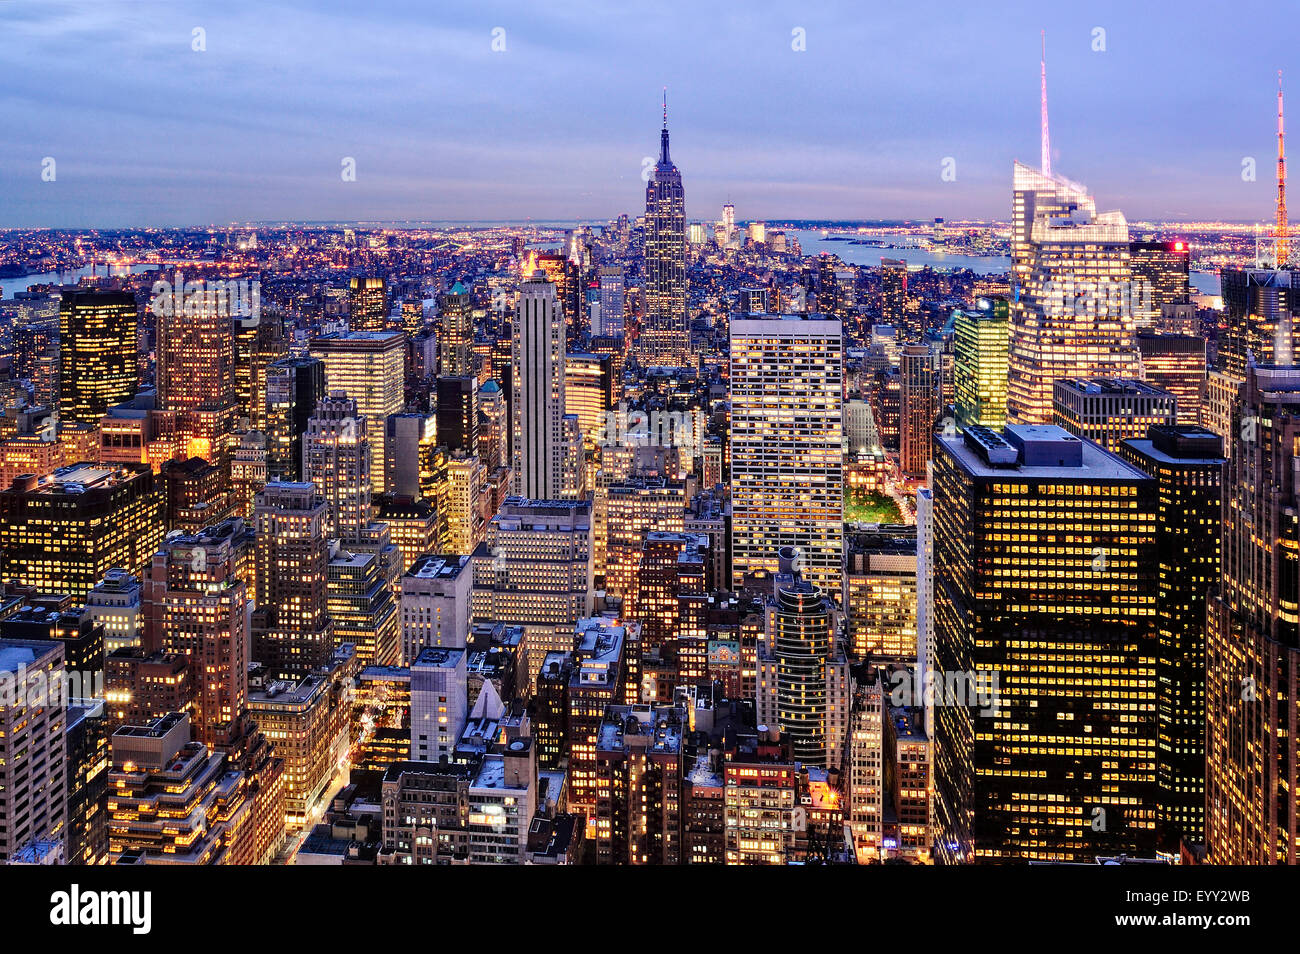 Aerial view of highrise buildings in cityscape at twilight - Stock Image